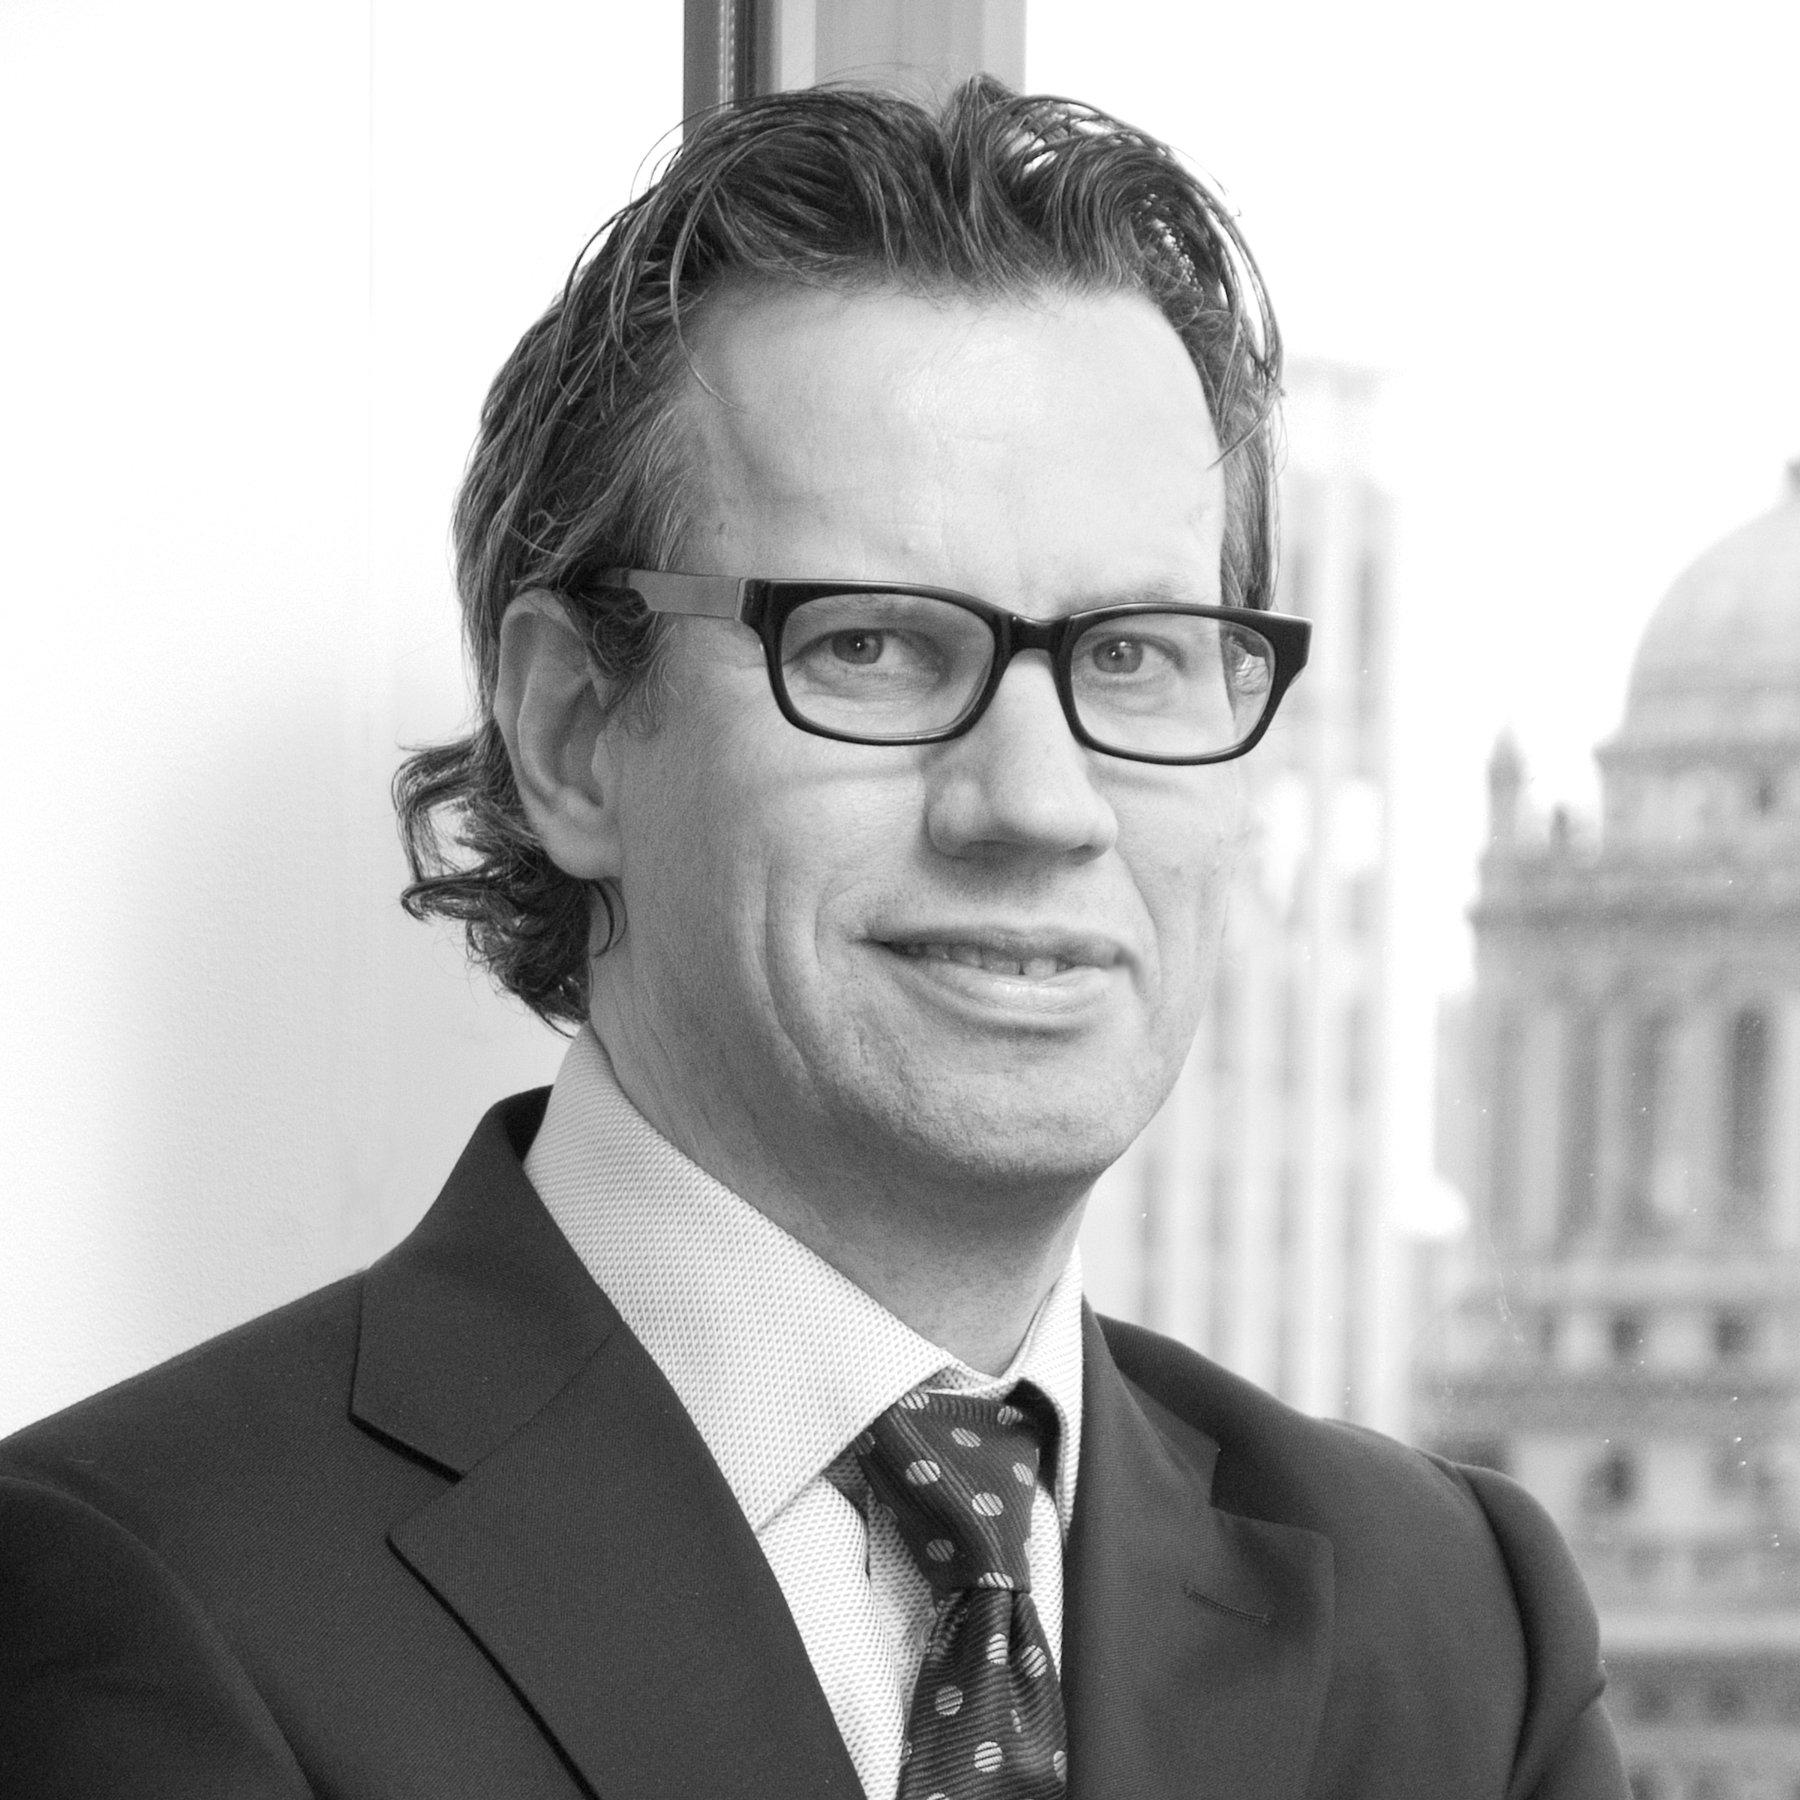 Chris Donnelly